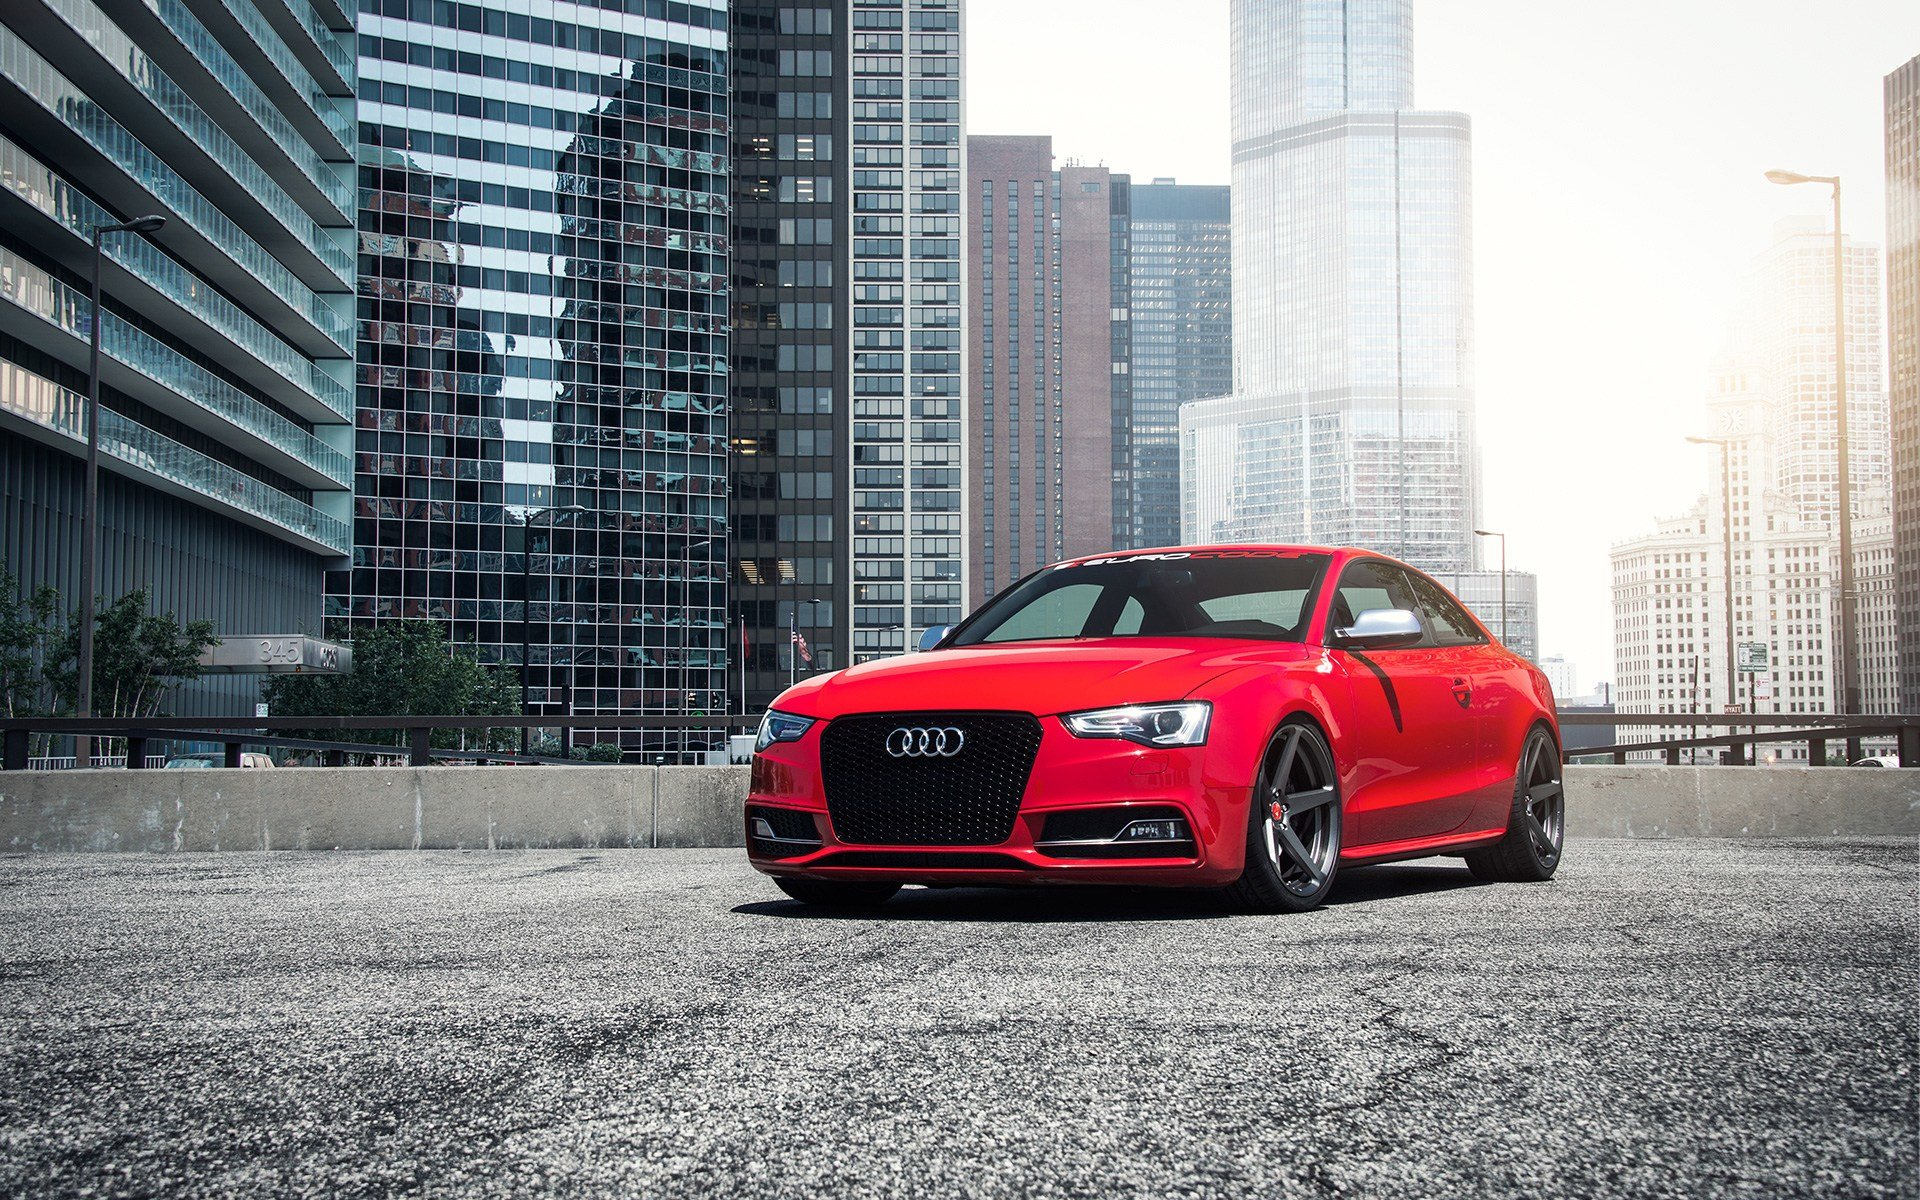 Latest Best Audi Wallpaper For Desktop Iphone And Mobile About Free Download